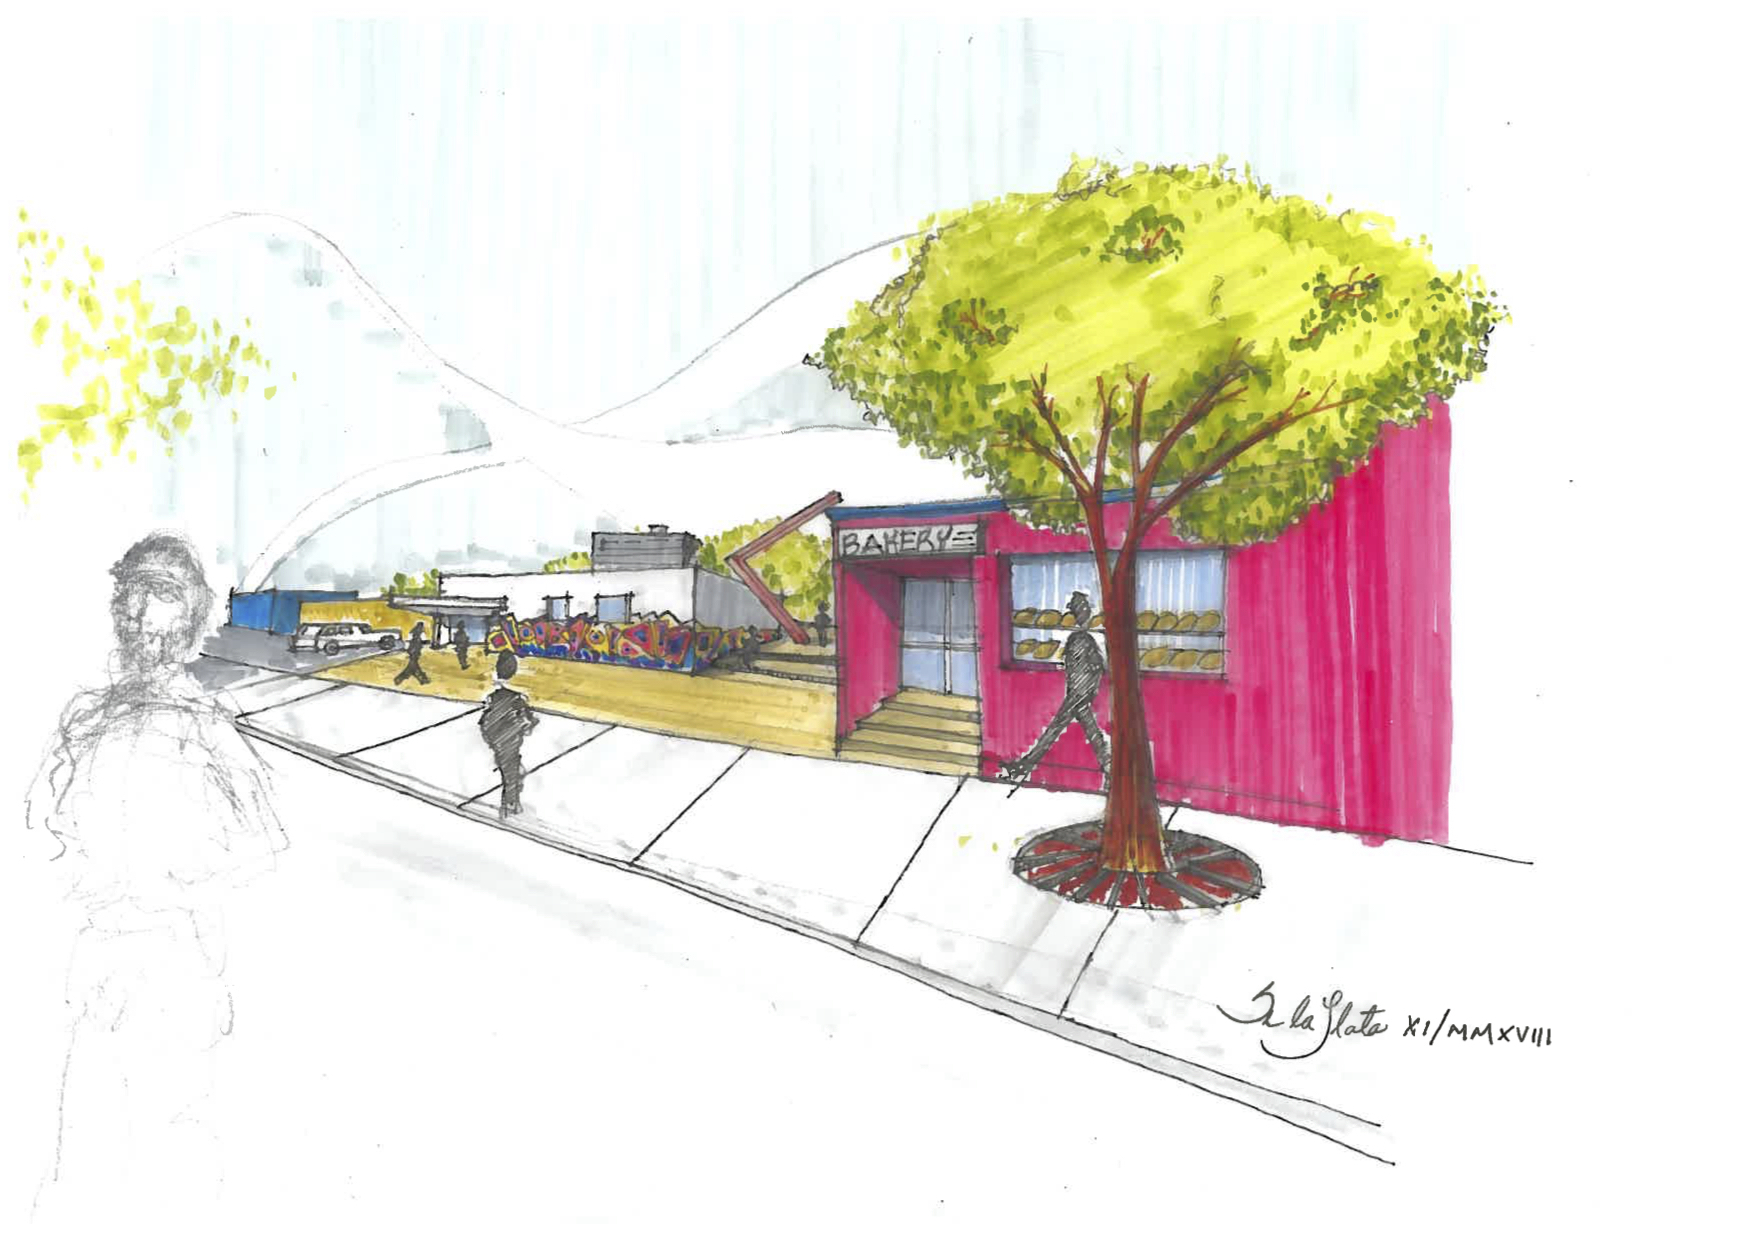 Project Idea for a public space in West Haven Community  (across Coffee Park) in Montreal. Here, A public space is projected in an alleyway to link the bakery and the community center. The sculpture connects conceptually with its counterpart on the other side of the rail tracks. Source. Author: Silvano De la Llata. 10 November 2018, Montreal, QC.